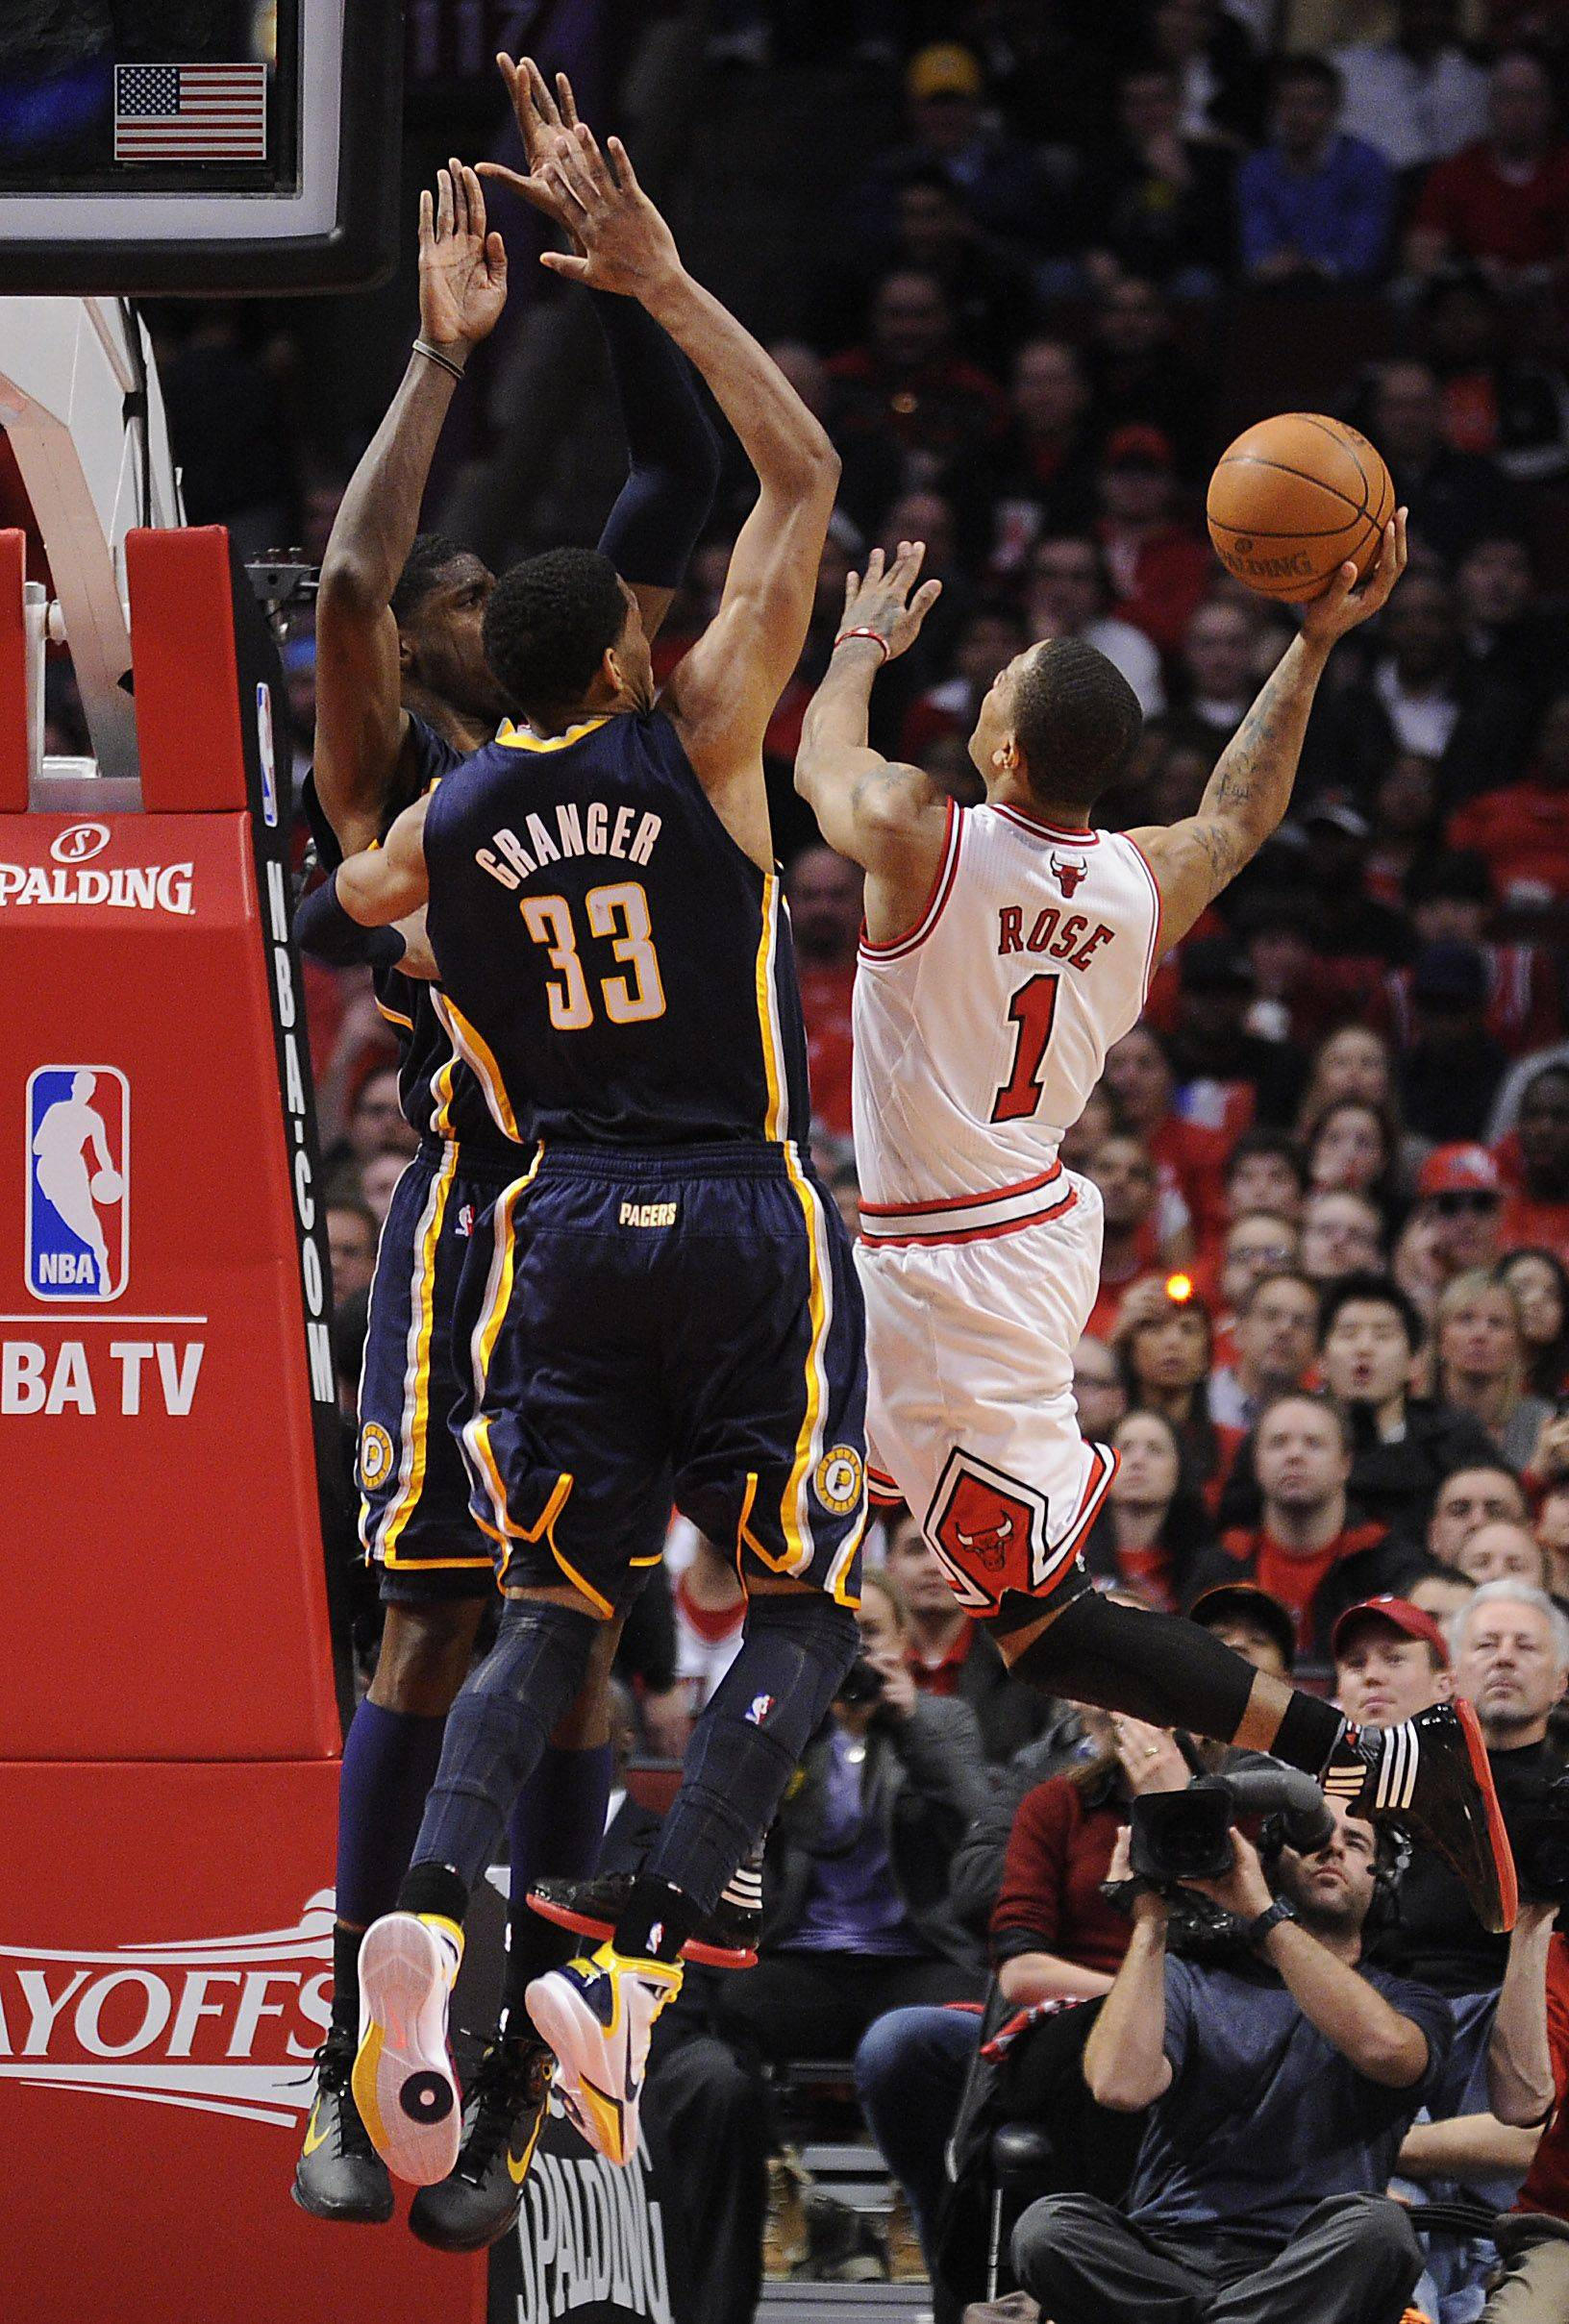 Derrick Rose goes up against Pacer Danny Granger in the second half.